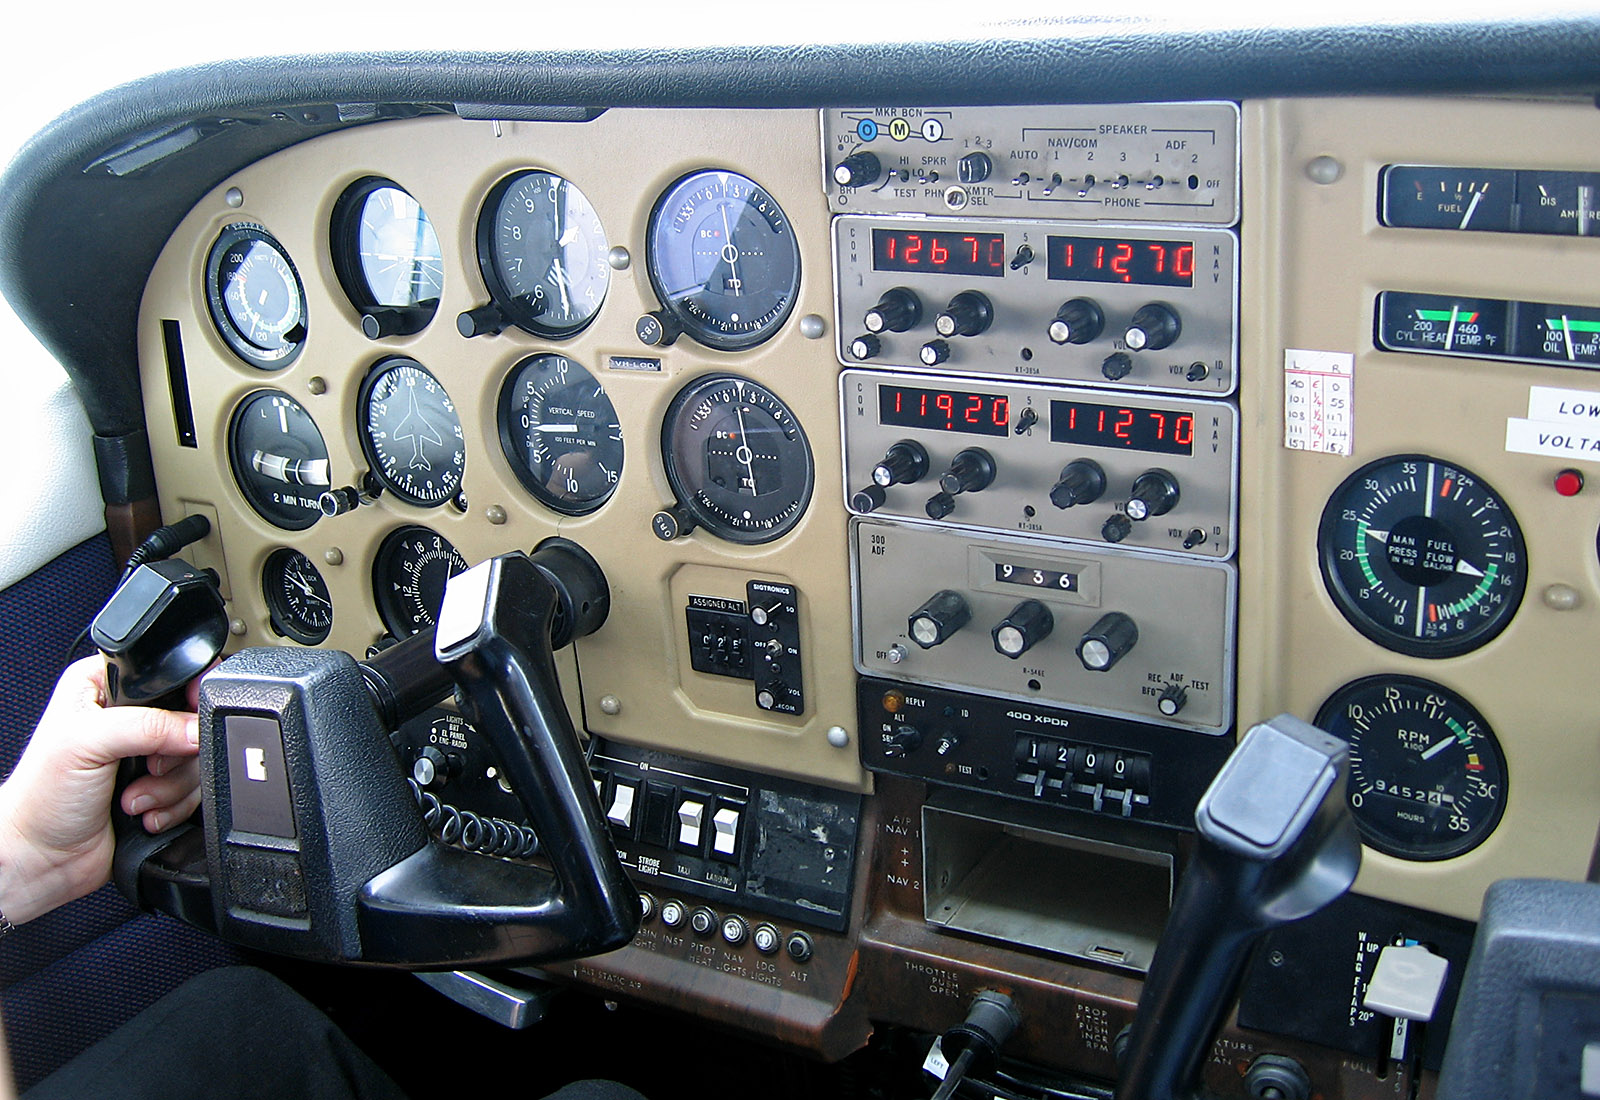 Cessna Wiring Diagram Similiar Wing Measurements Gpi Fuel Pump Dash Keywords Instrument Panel Overlay